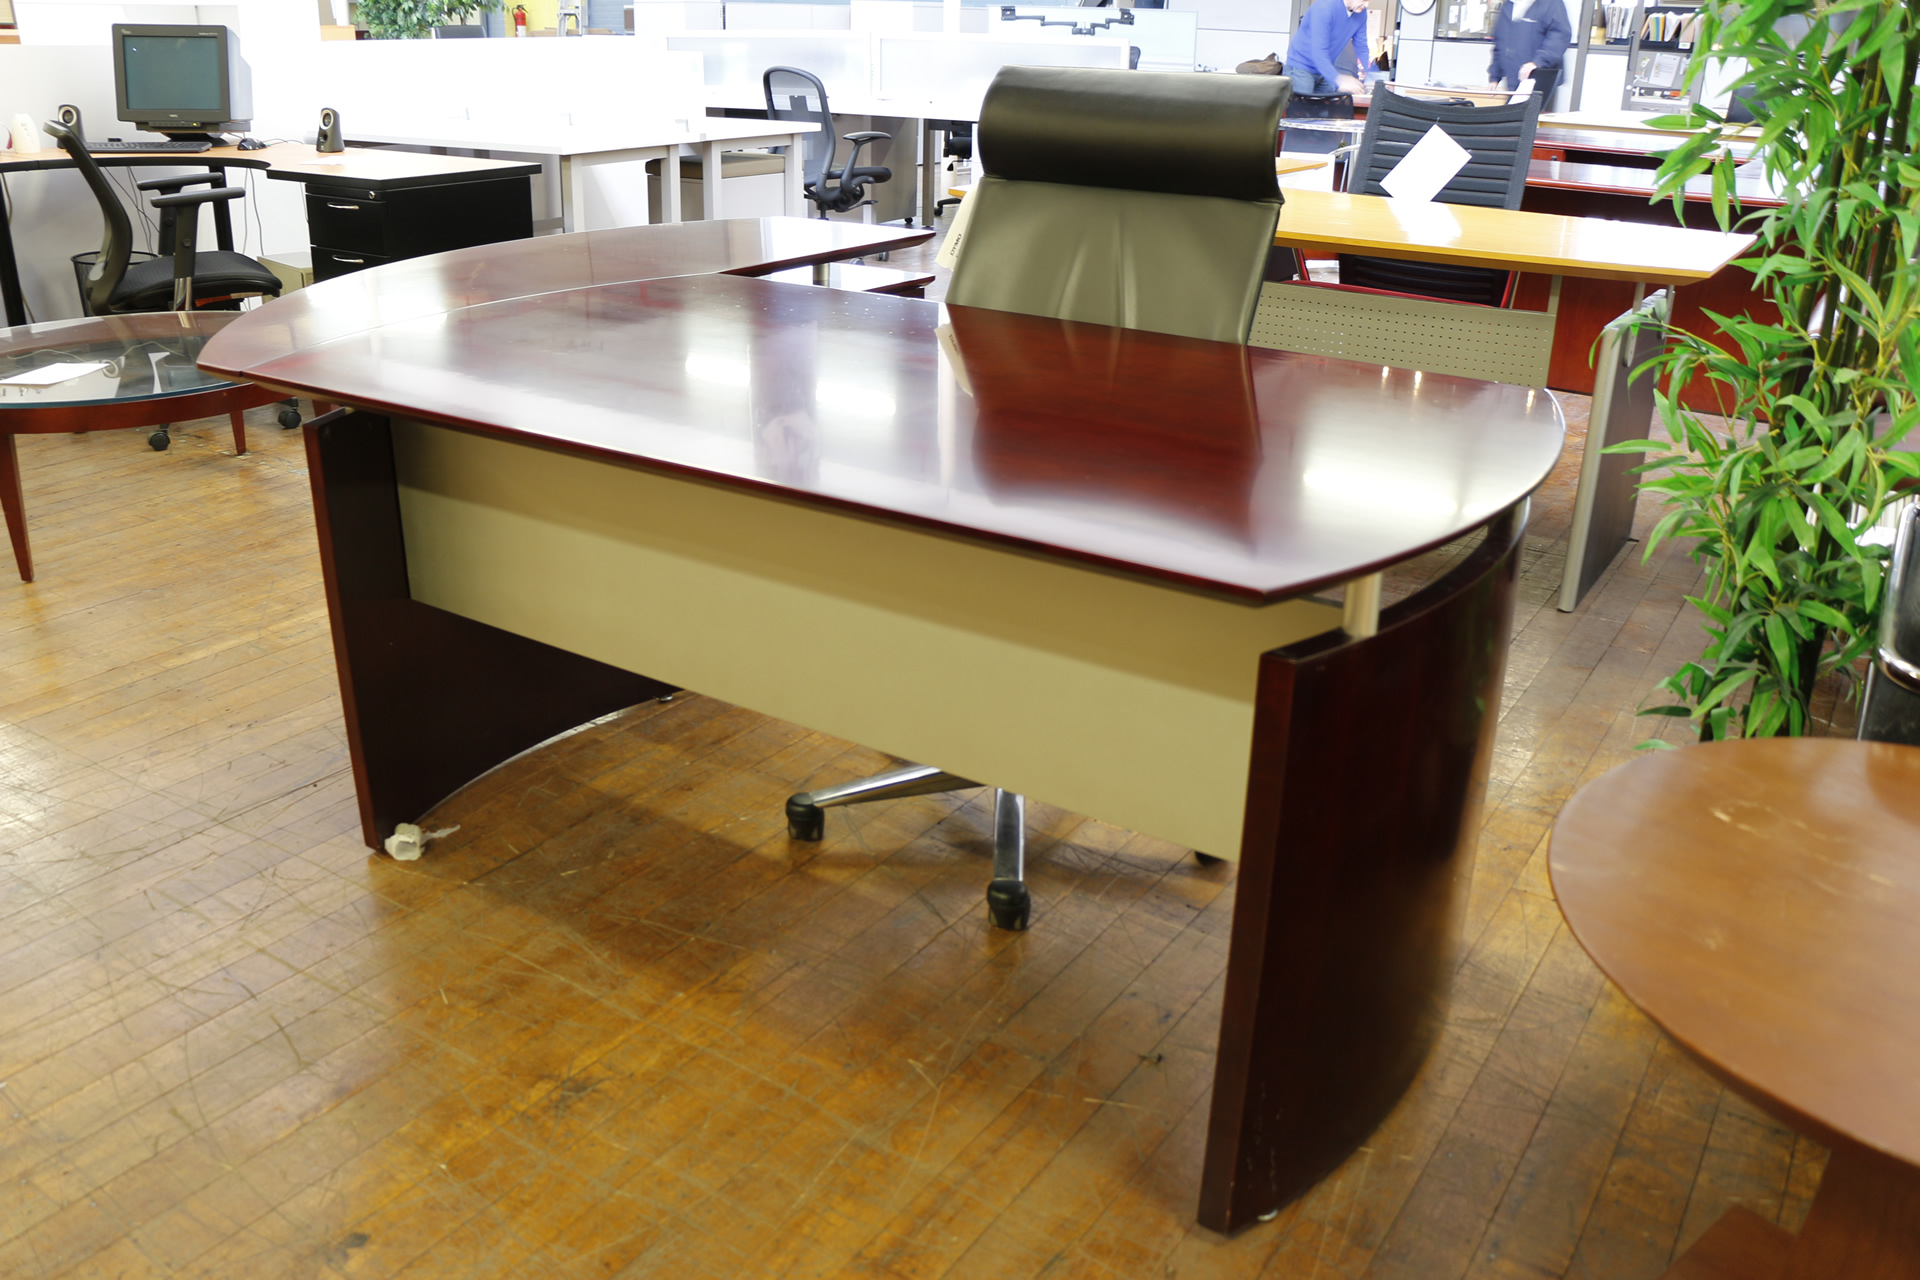 peartreeofficefurniture_peartreeofficefurniture_mg_4966.jpg